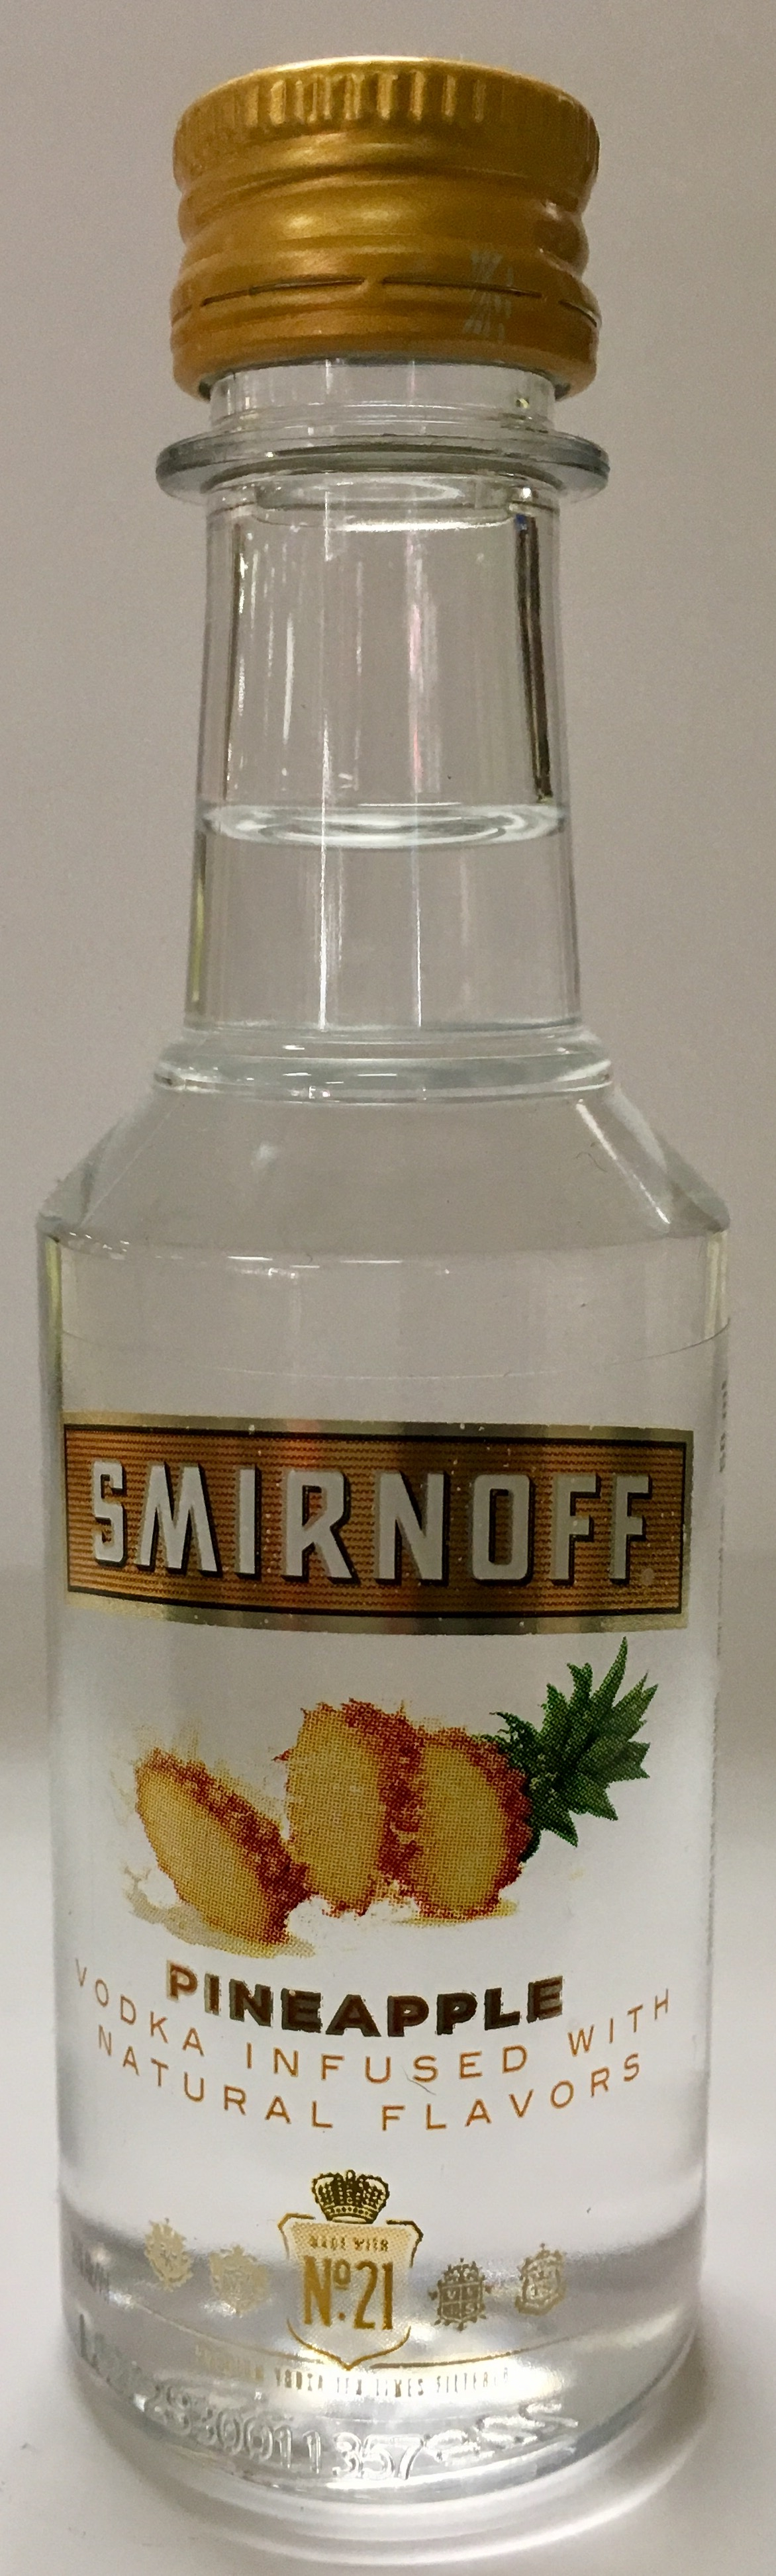 Mini bottle Smirnoff Vodka